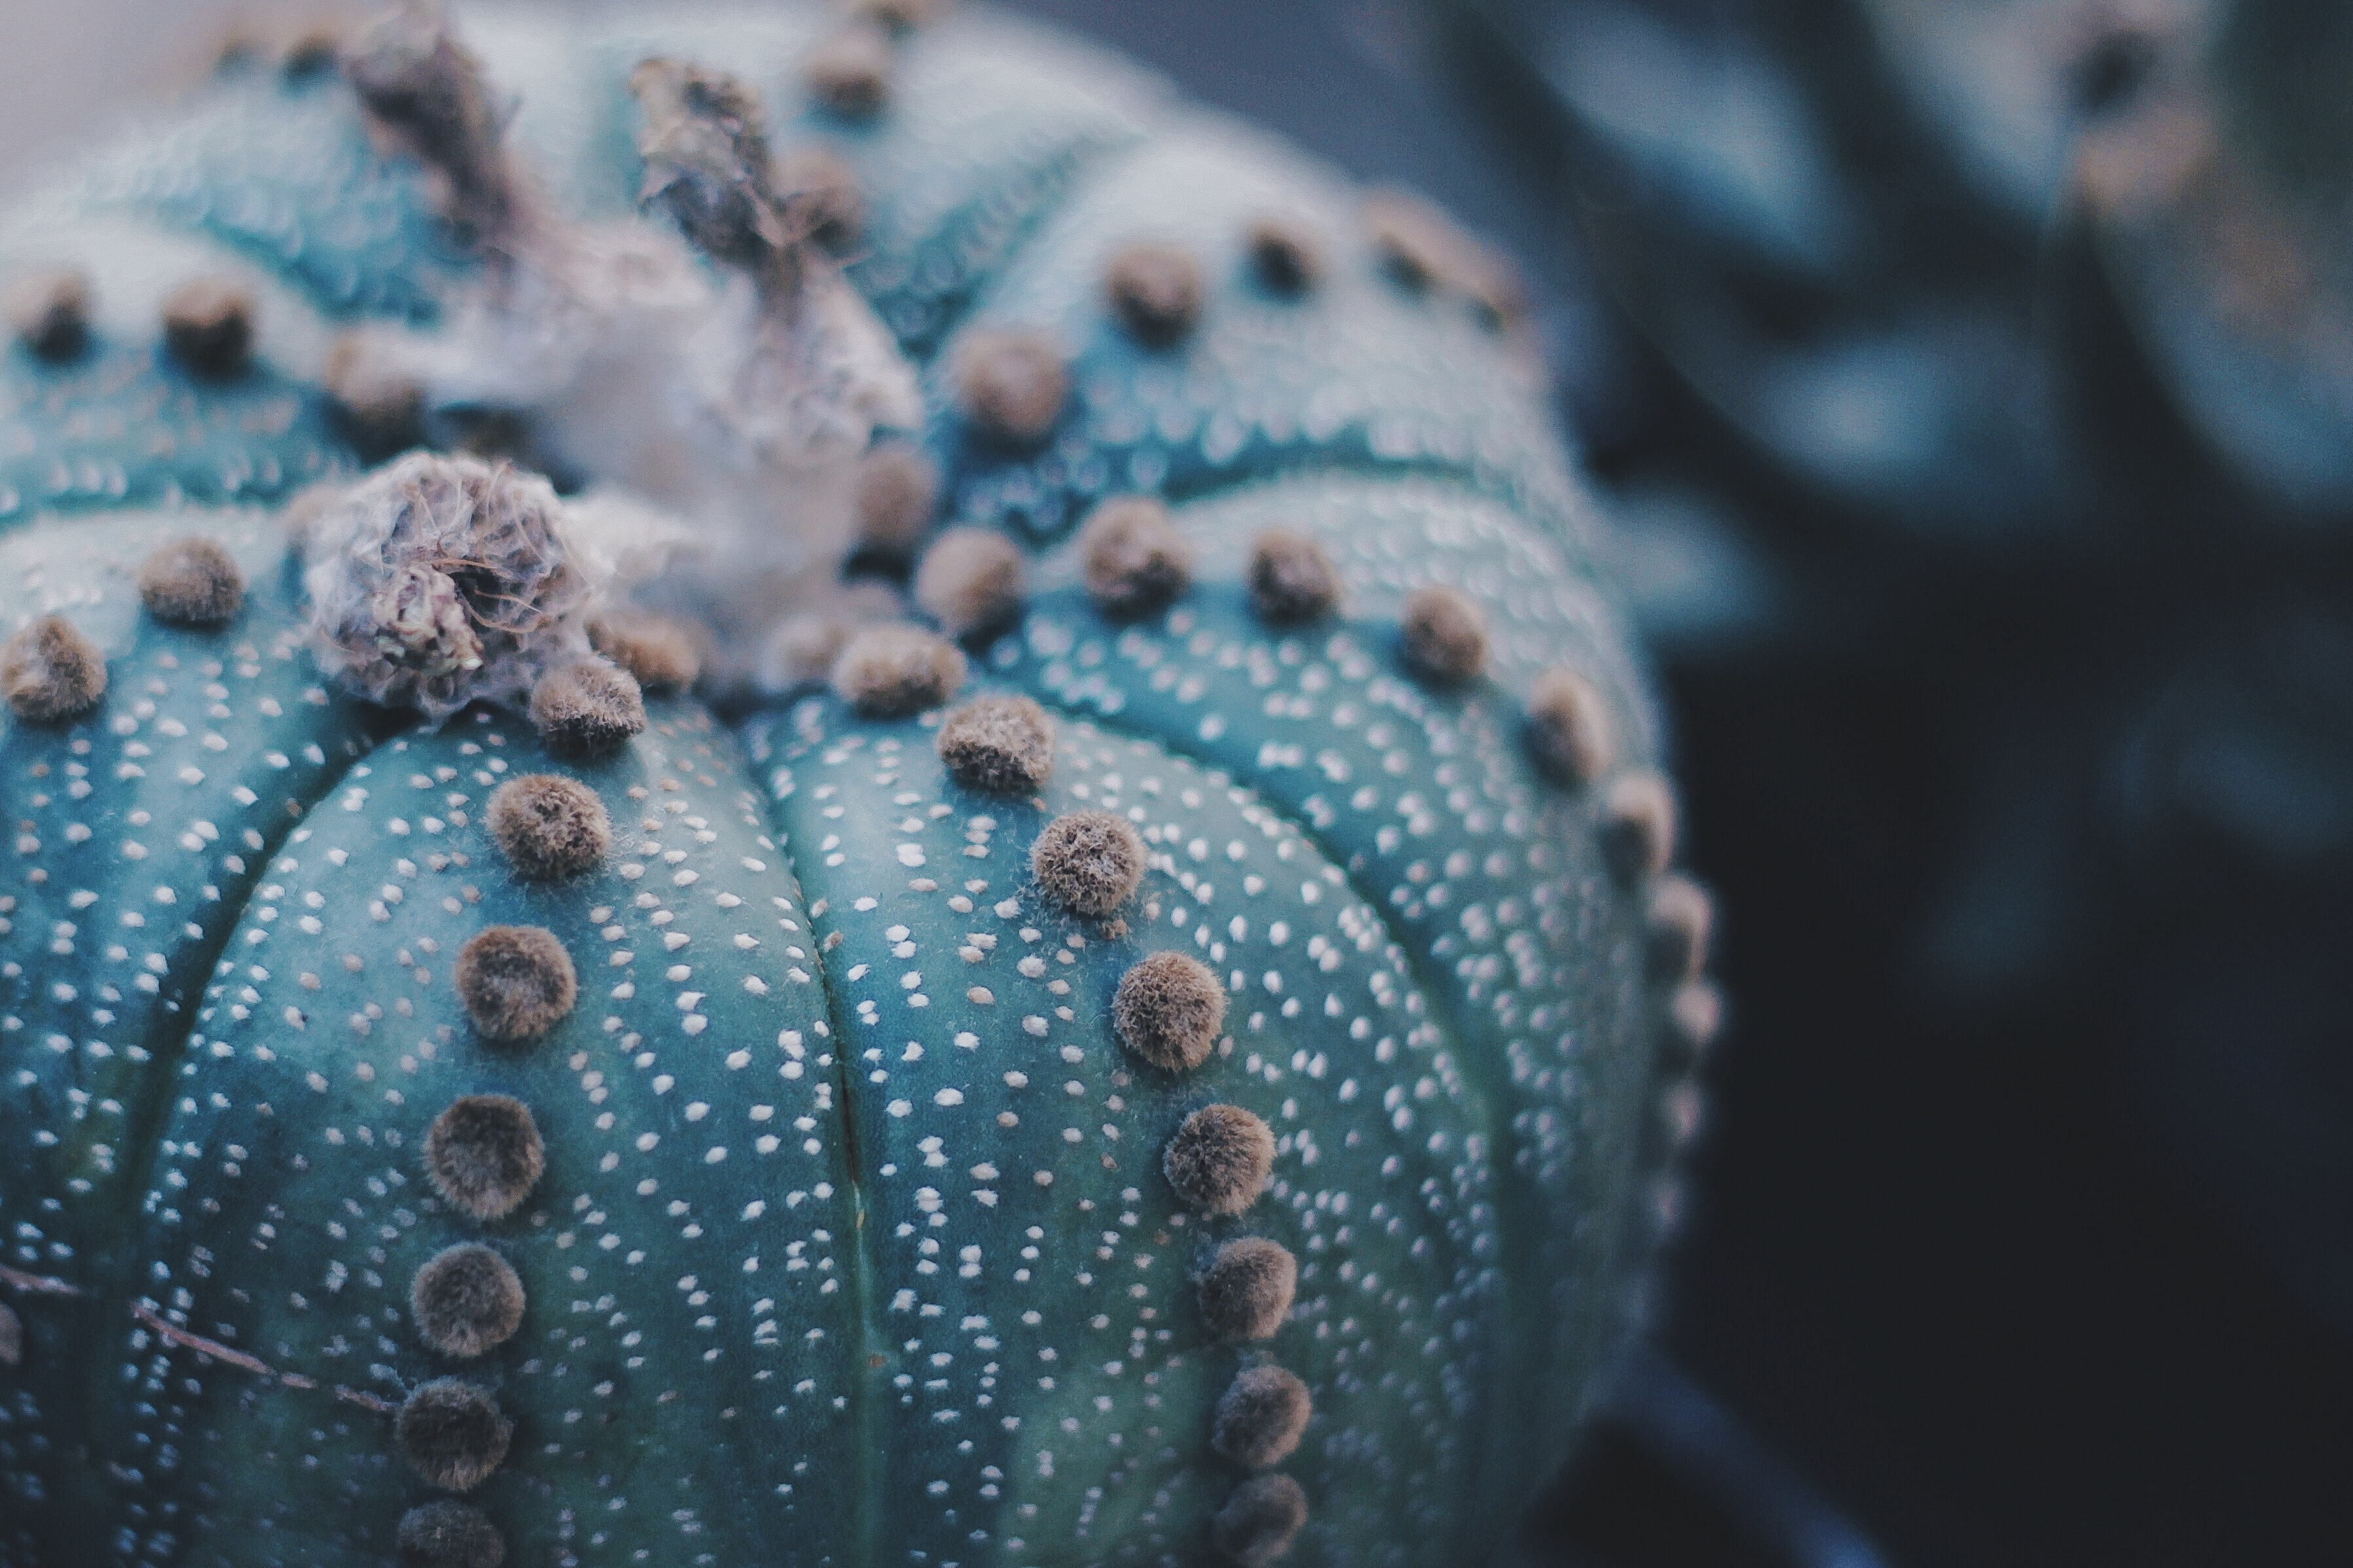 selective focus photography of a cactus